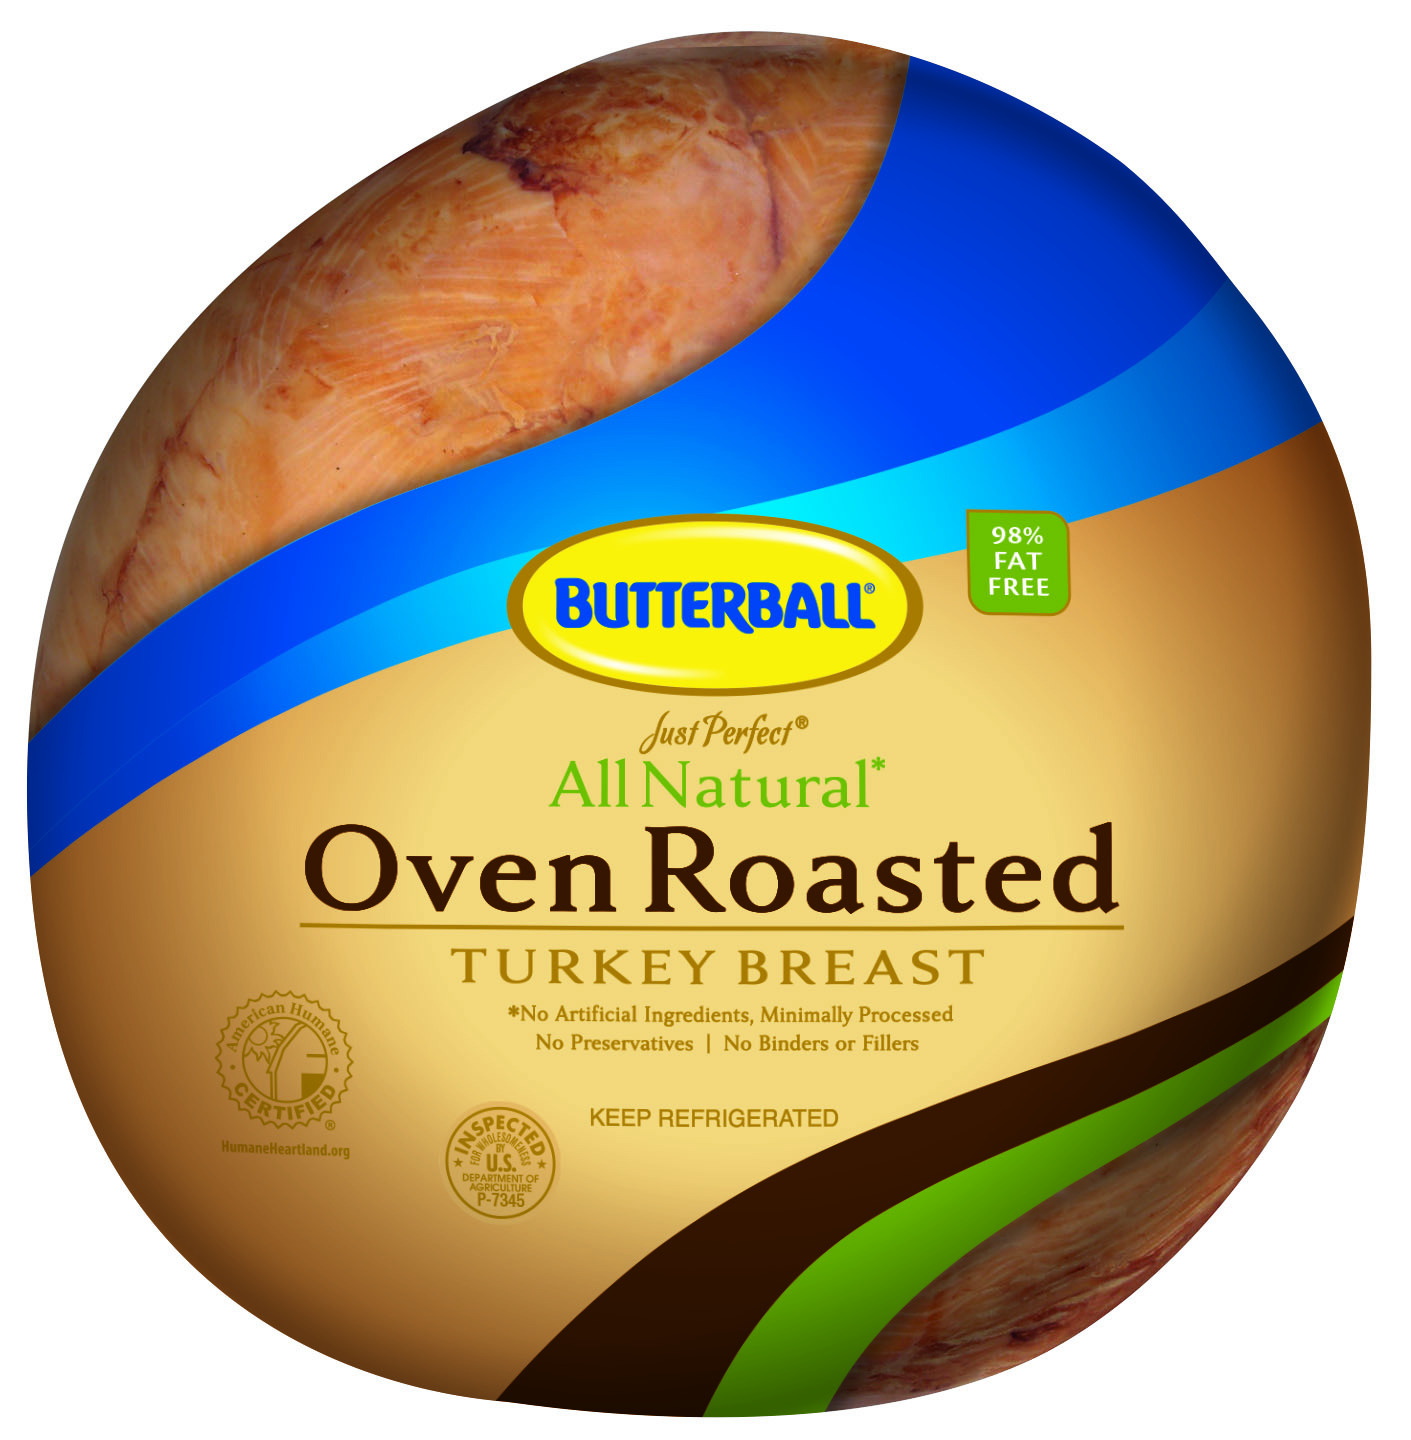 Just Perfect Handcrafted All Natural Oven Roasted Turkey Breast